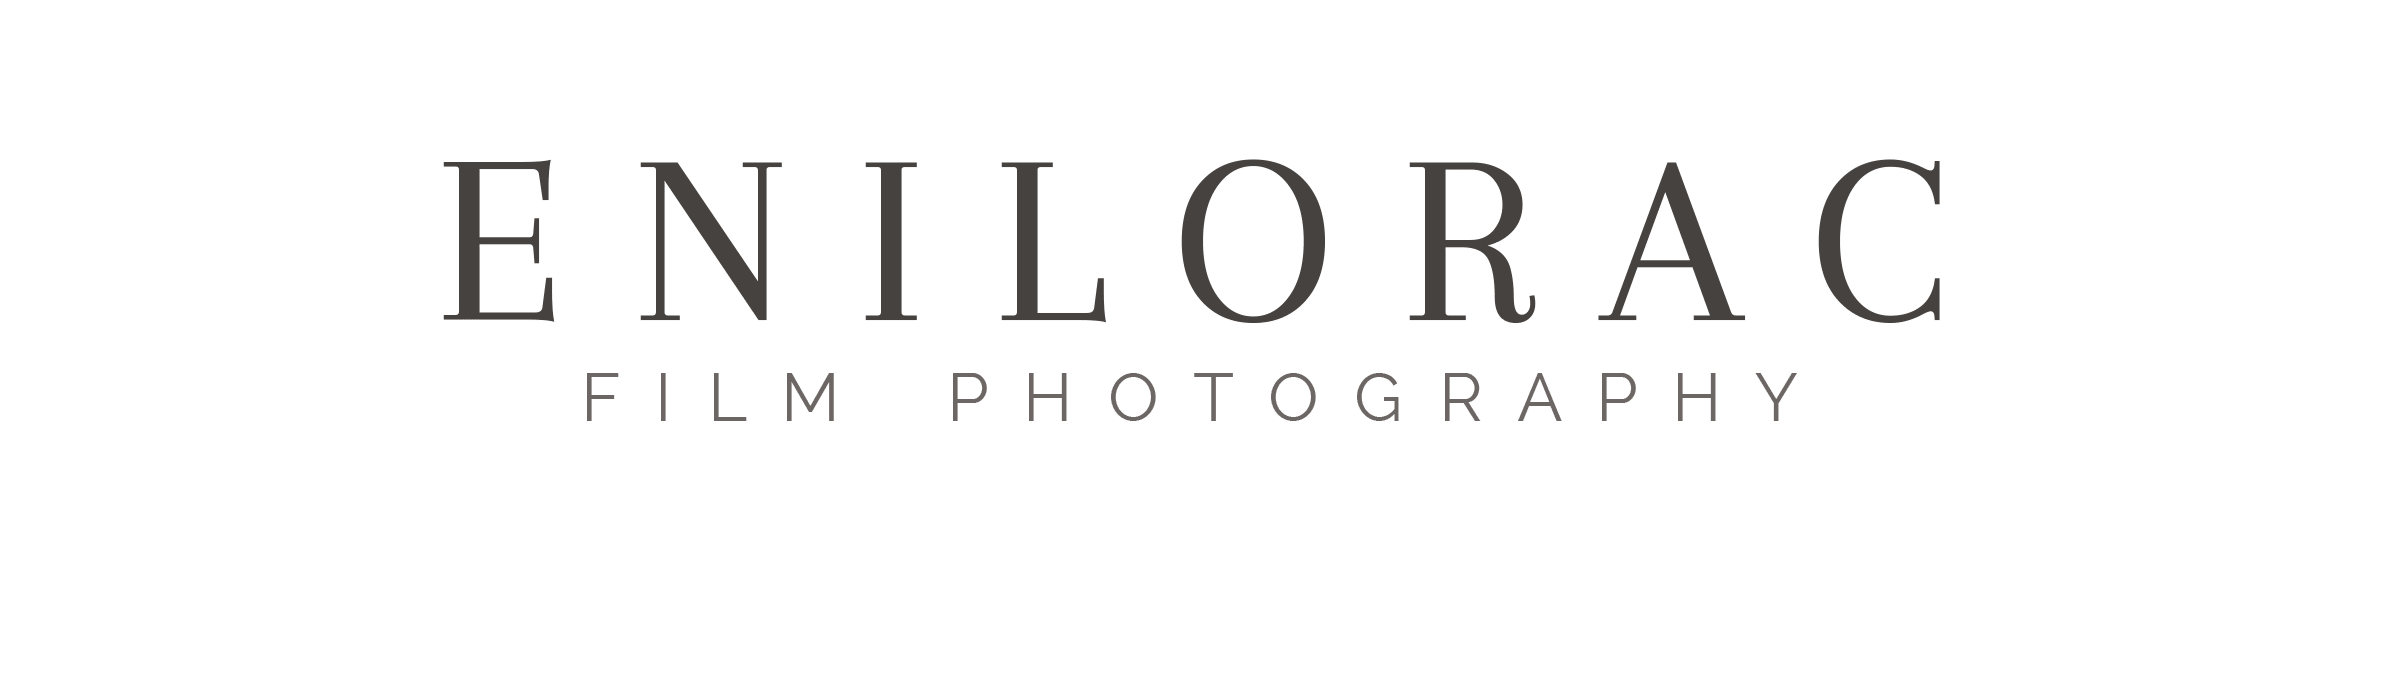 http://www.enilorac.fr/wp-content/uploads/2017/12/logo-enilorac-film-photography.png